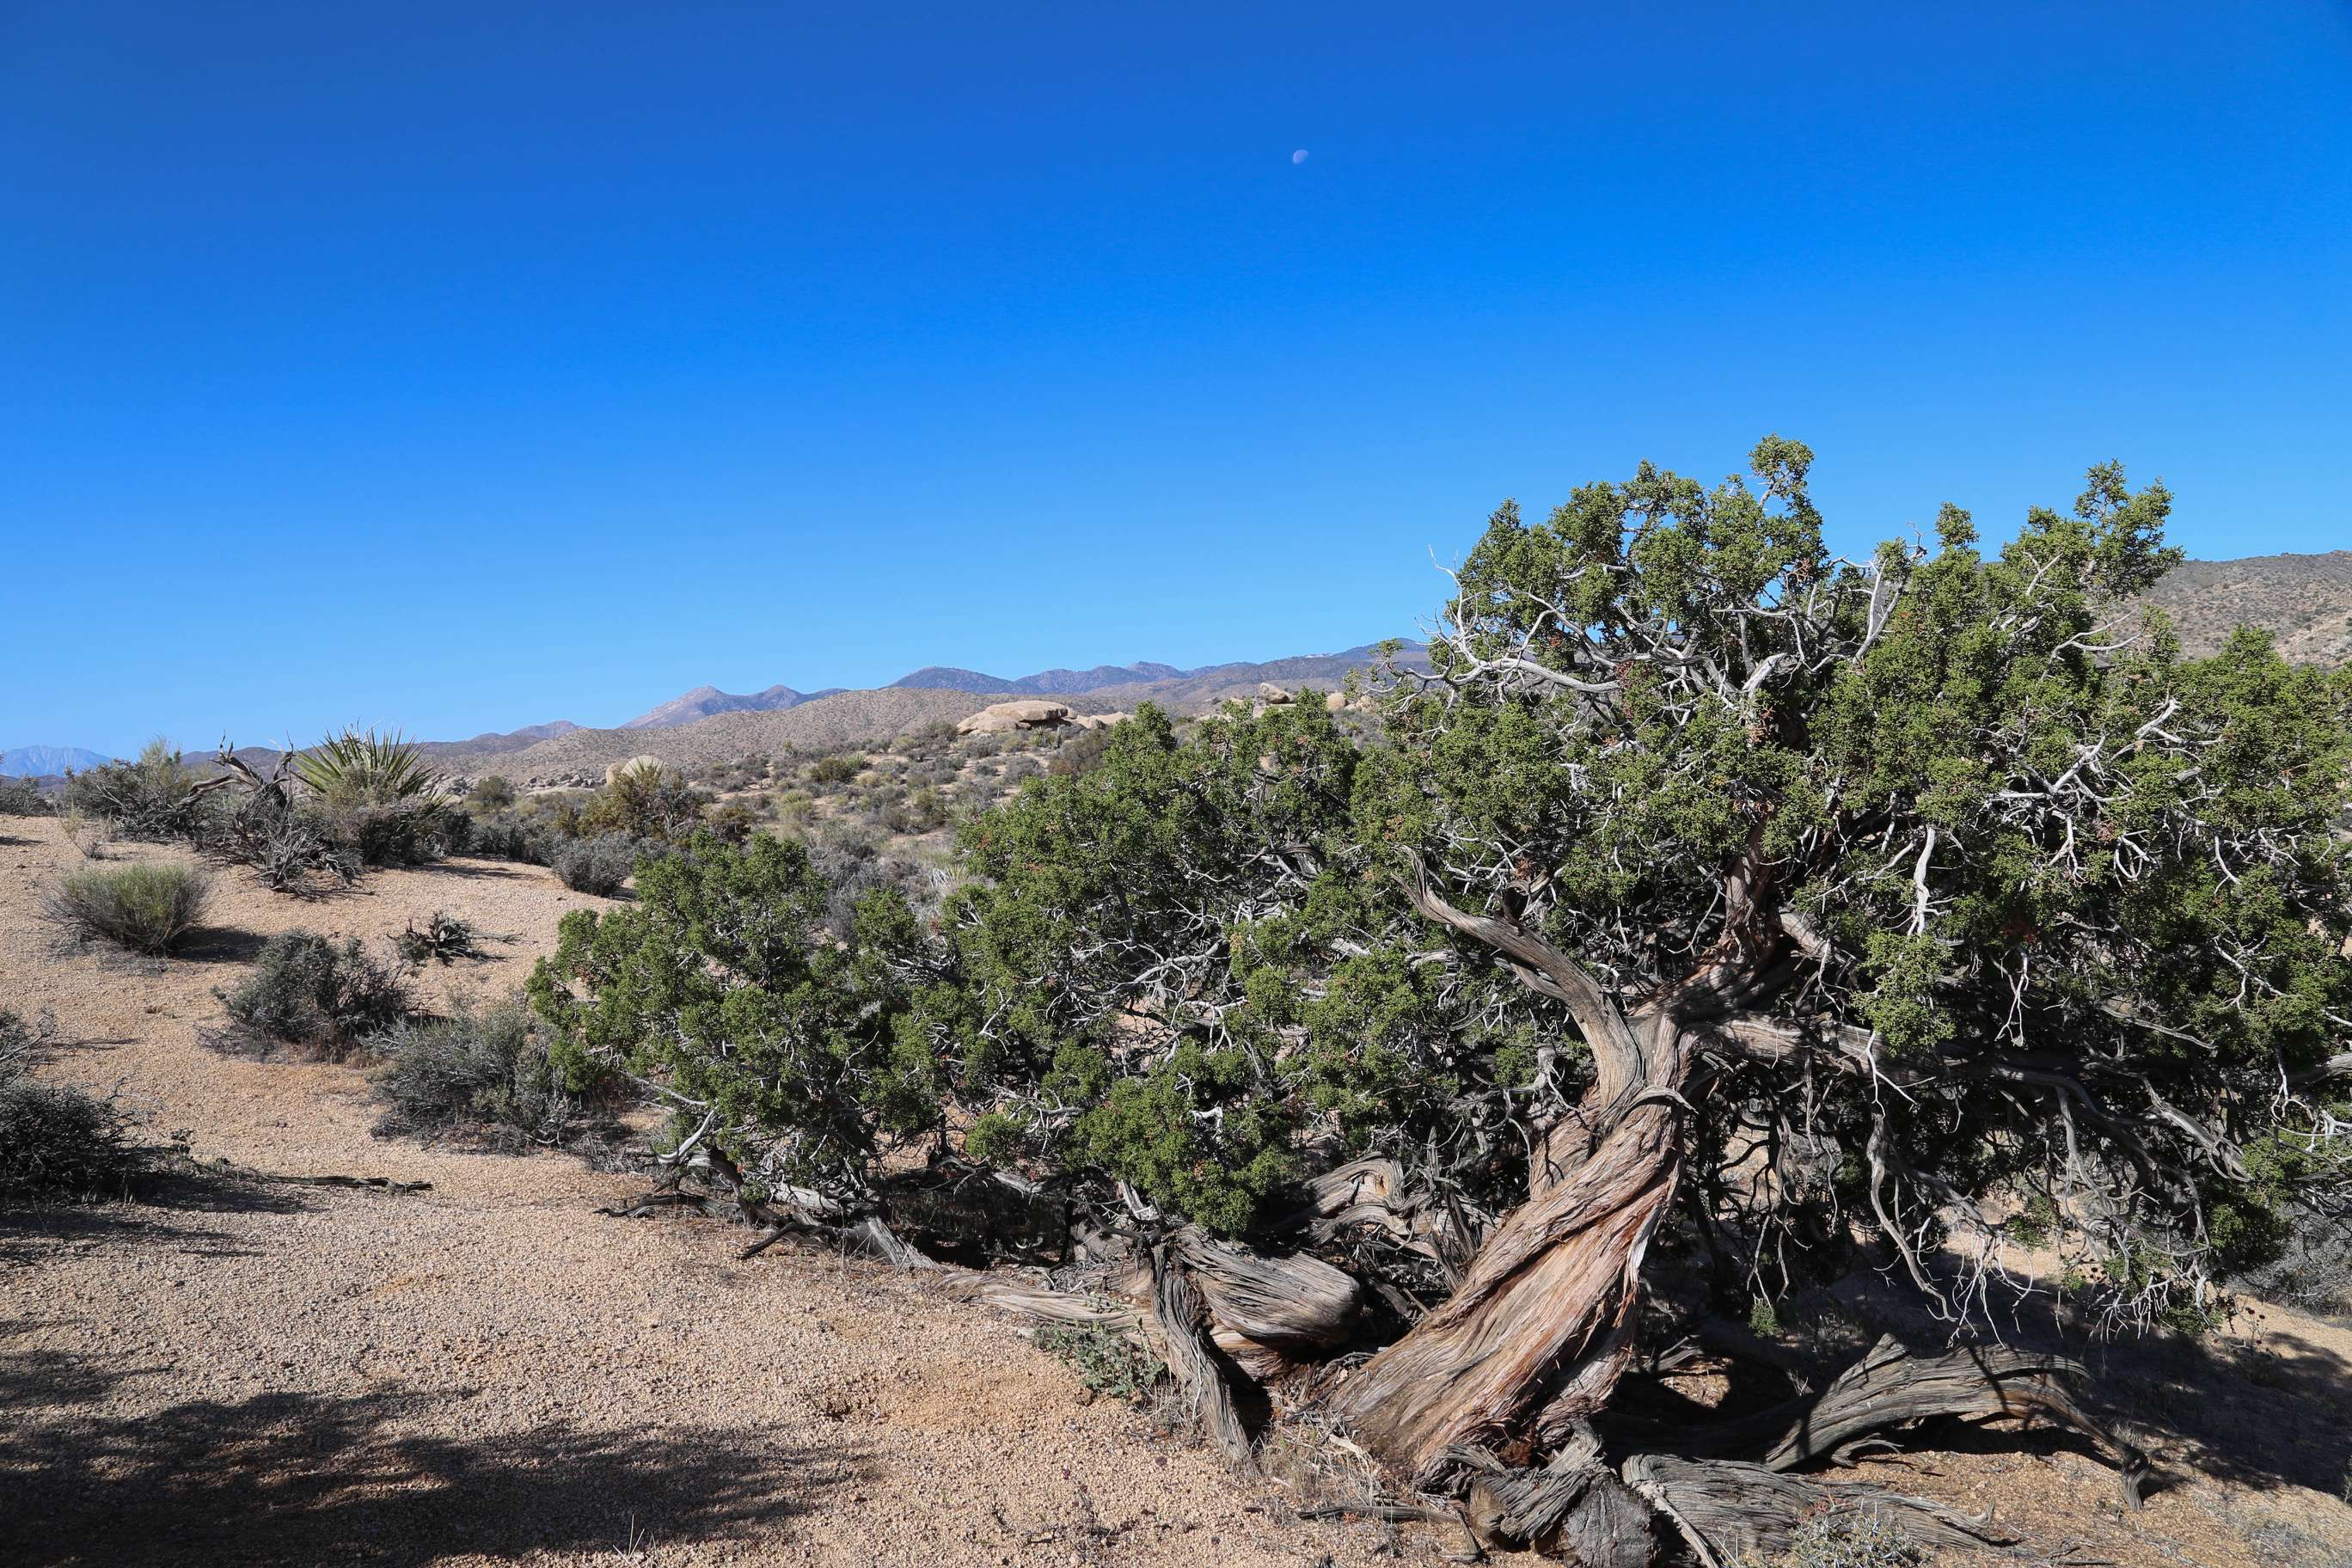 The desert landscape of Yucca Valley just waits to be explored.